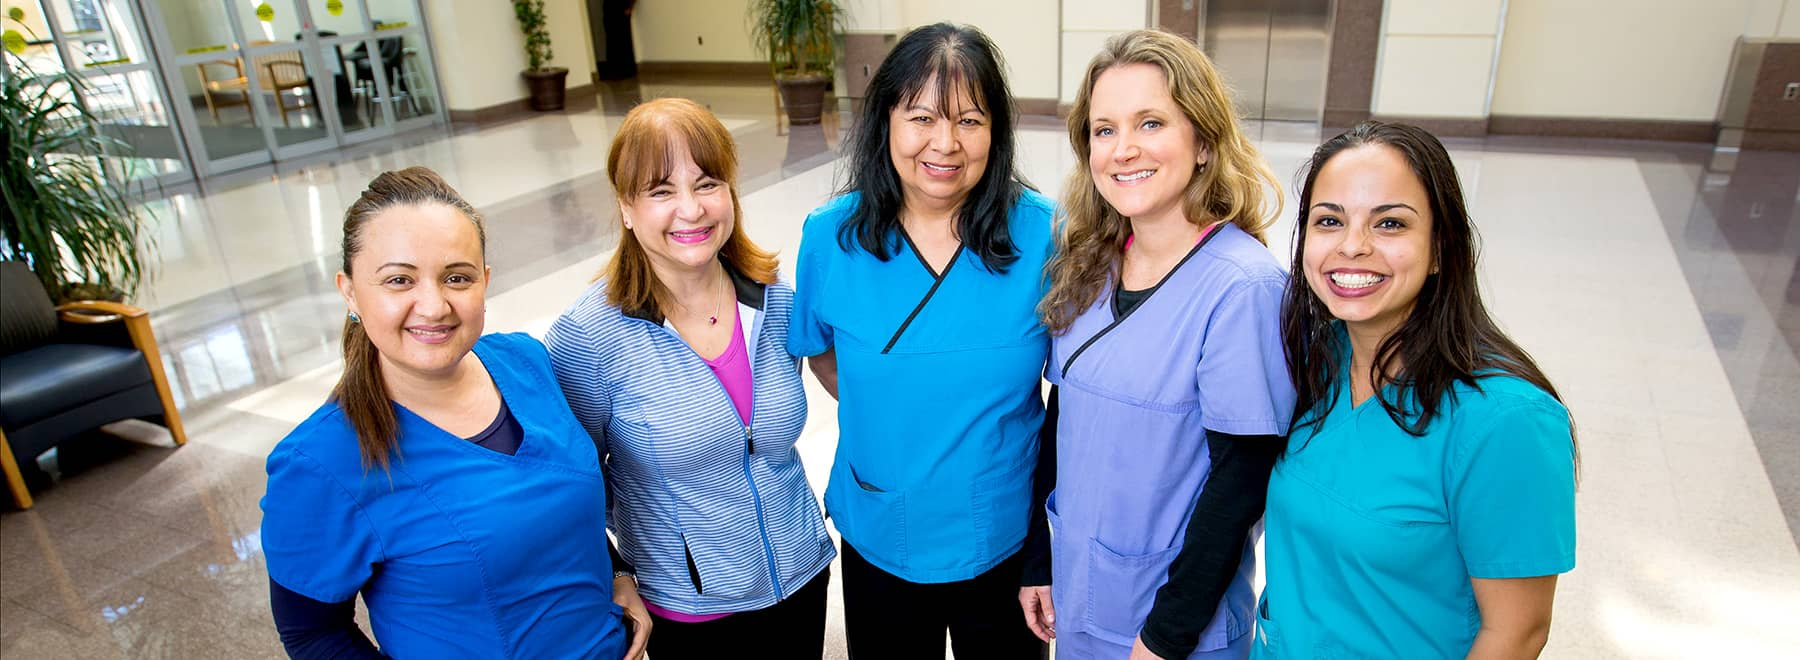 Group of female medical interpreters pose in a UMMC lobby.